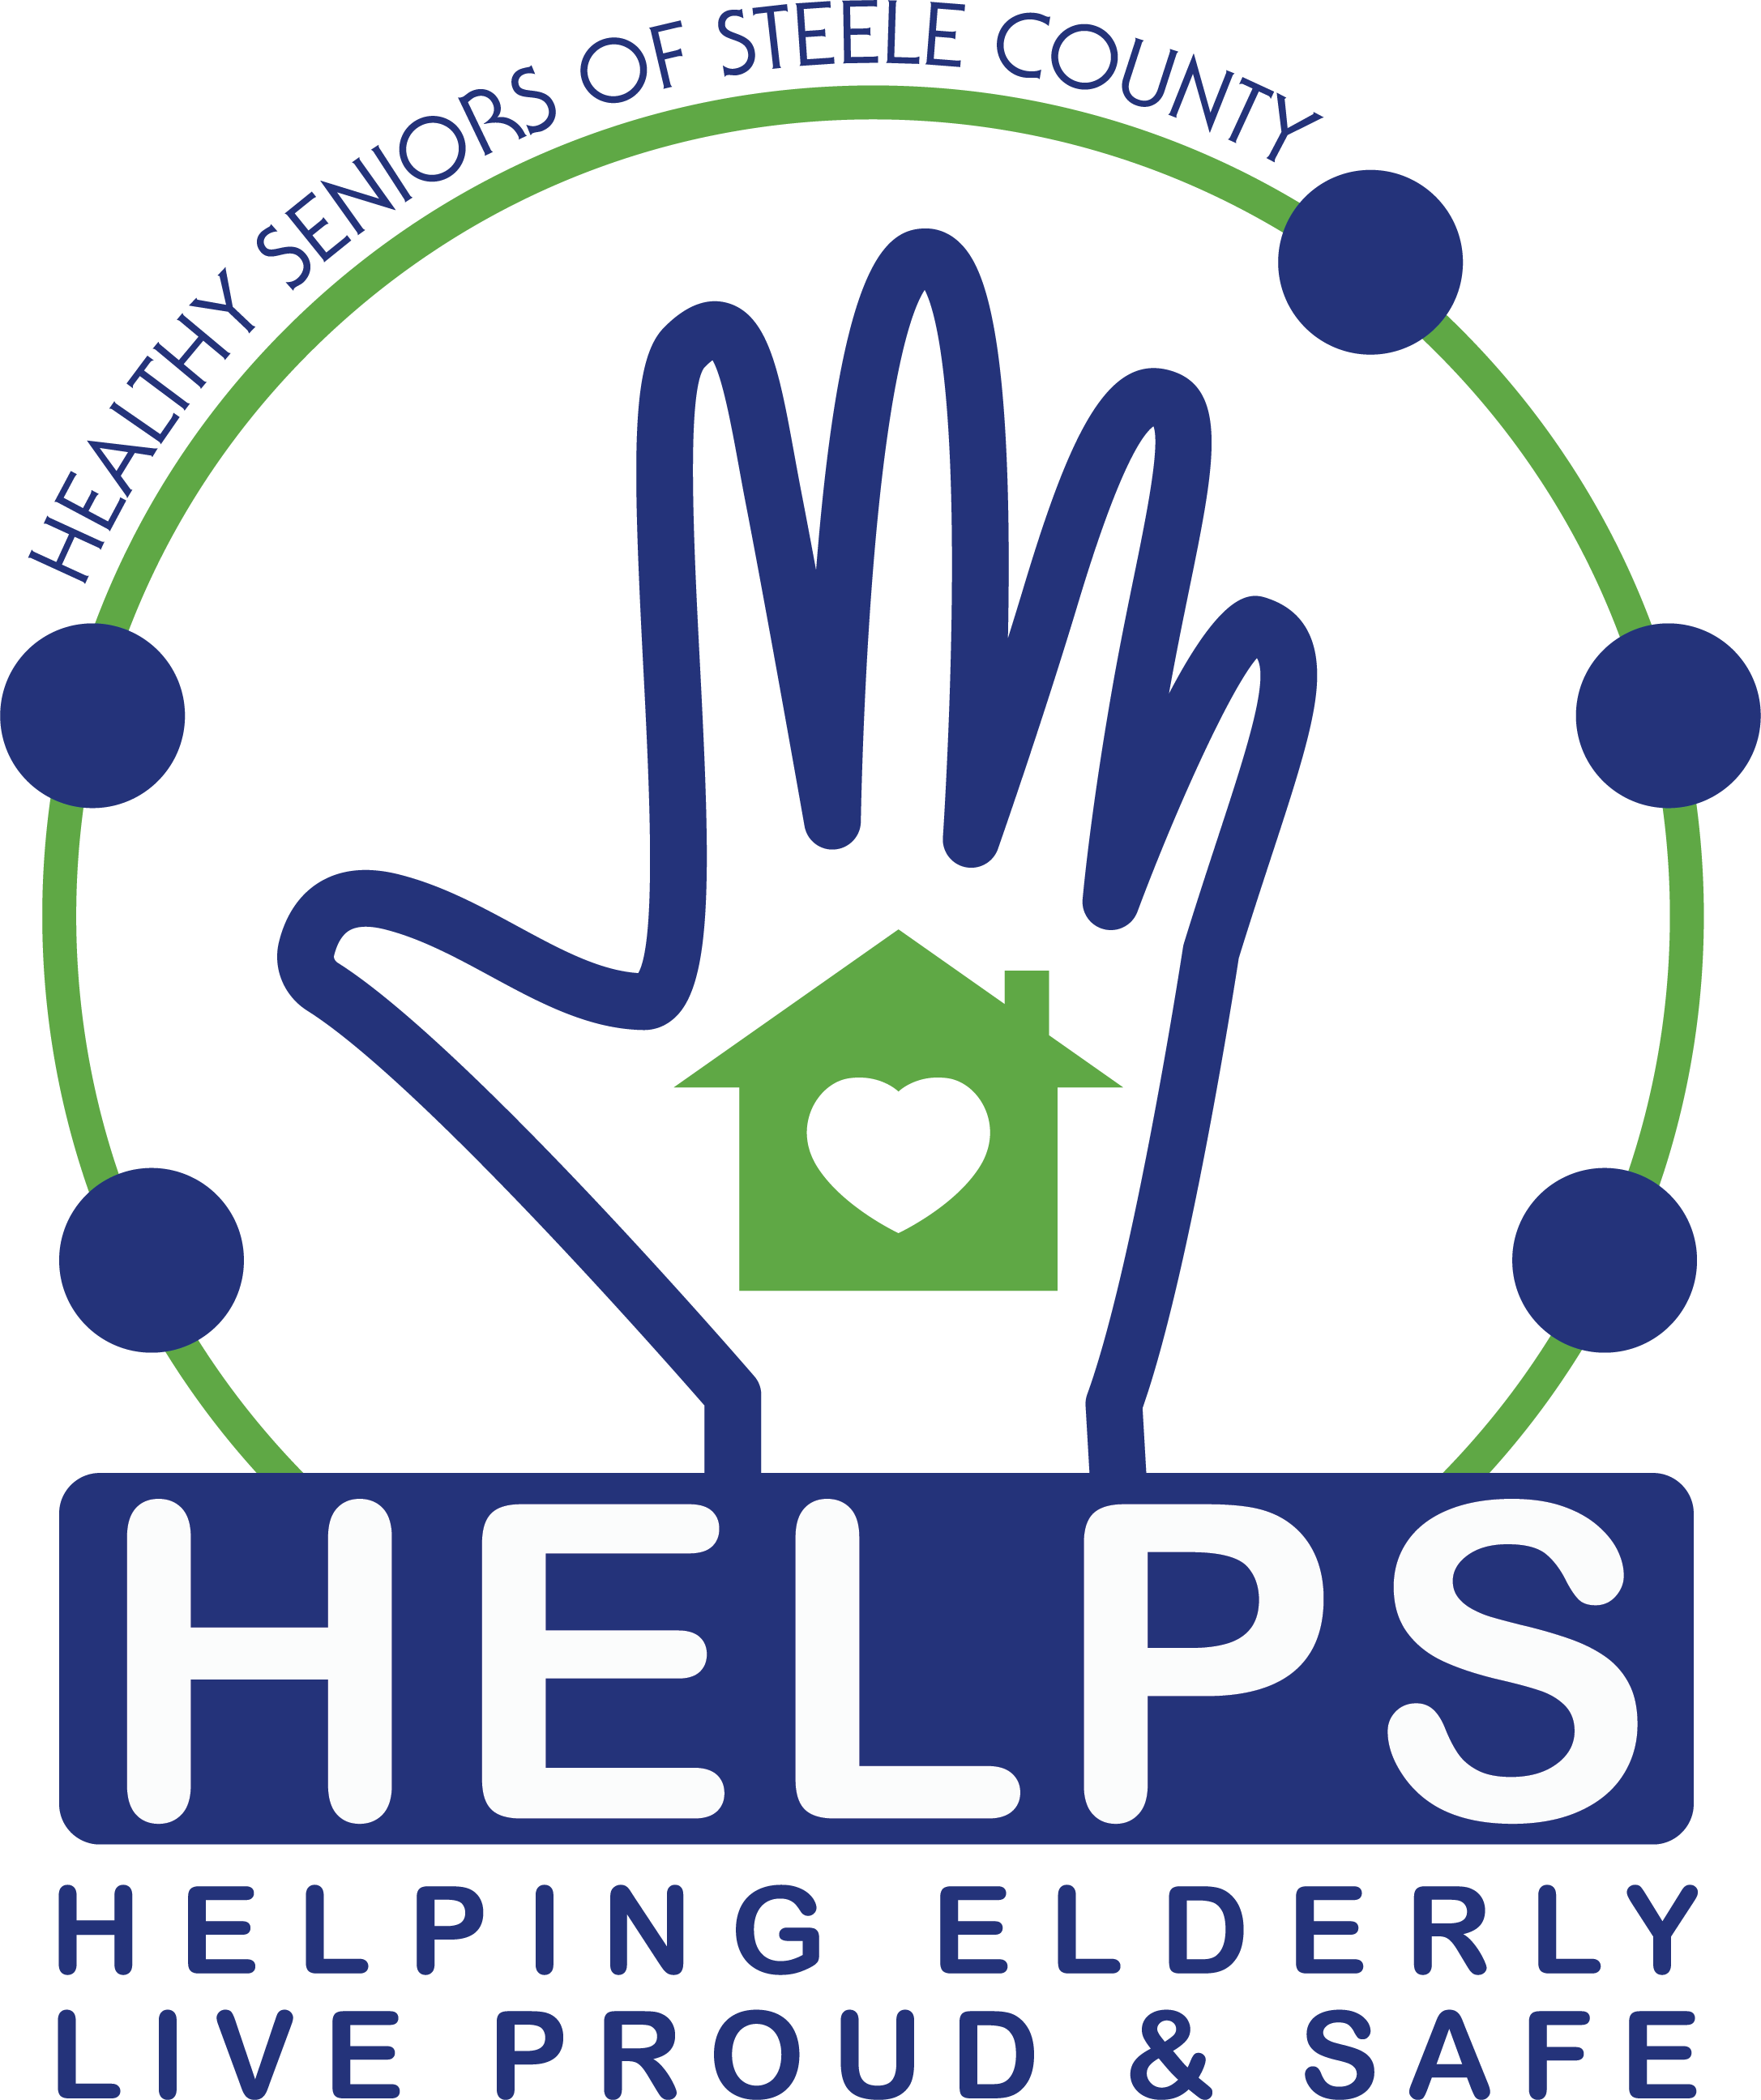 Healthy Seniors of Steele County - Helping Elderly Live Proud & Safe Logo